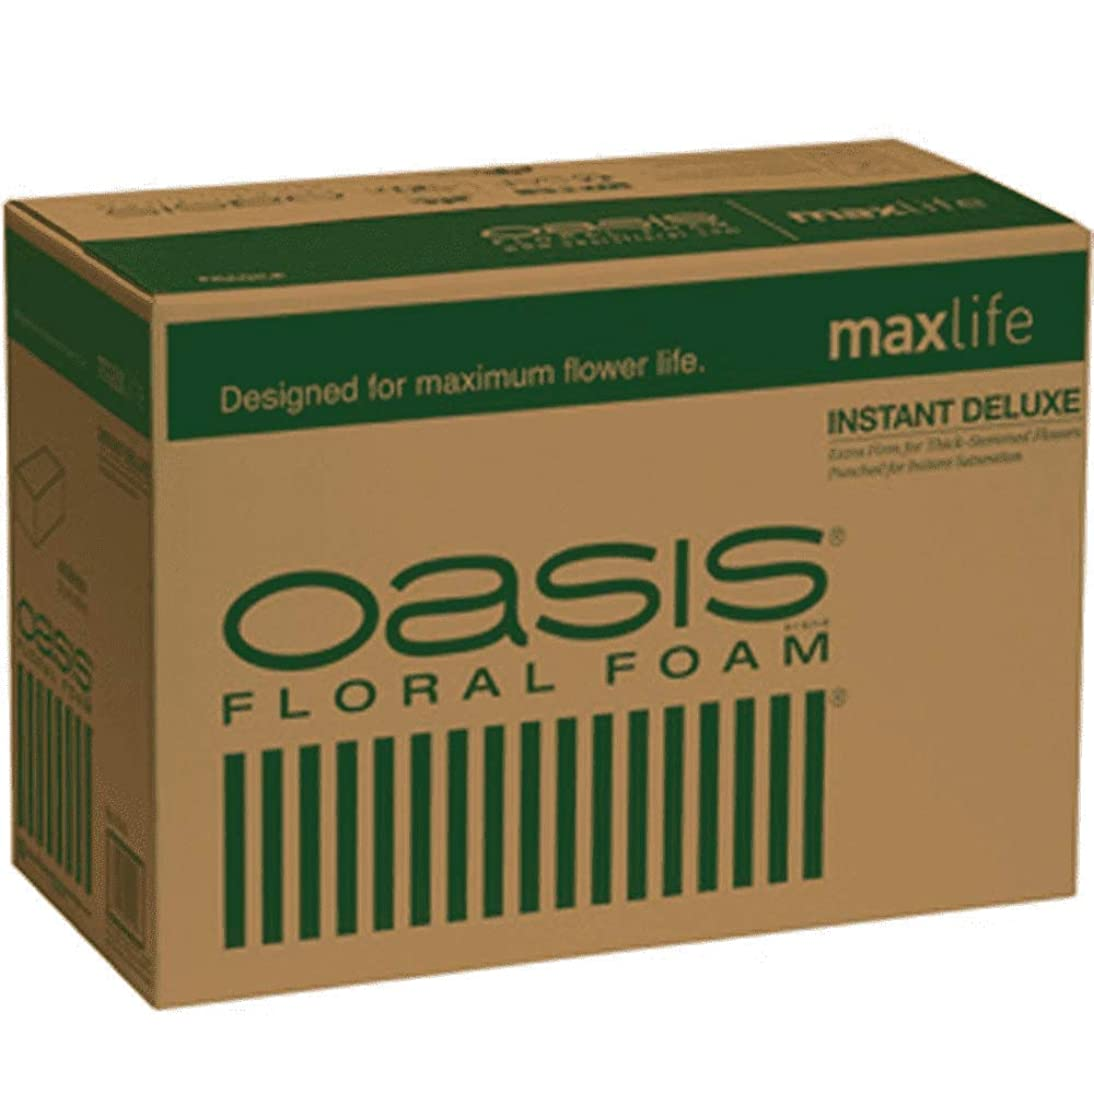 Oasis Instant Deluxe Floral Foam Bricks, Case O